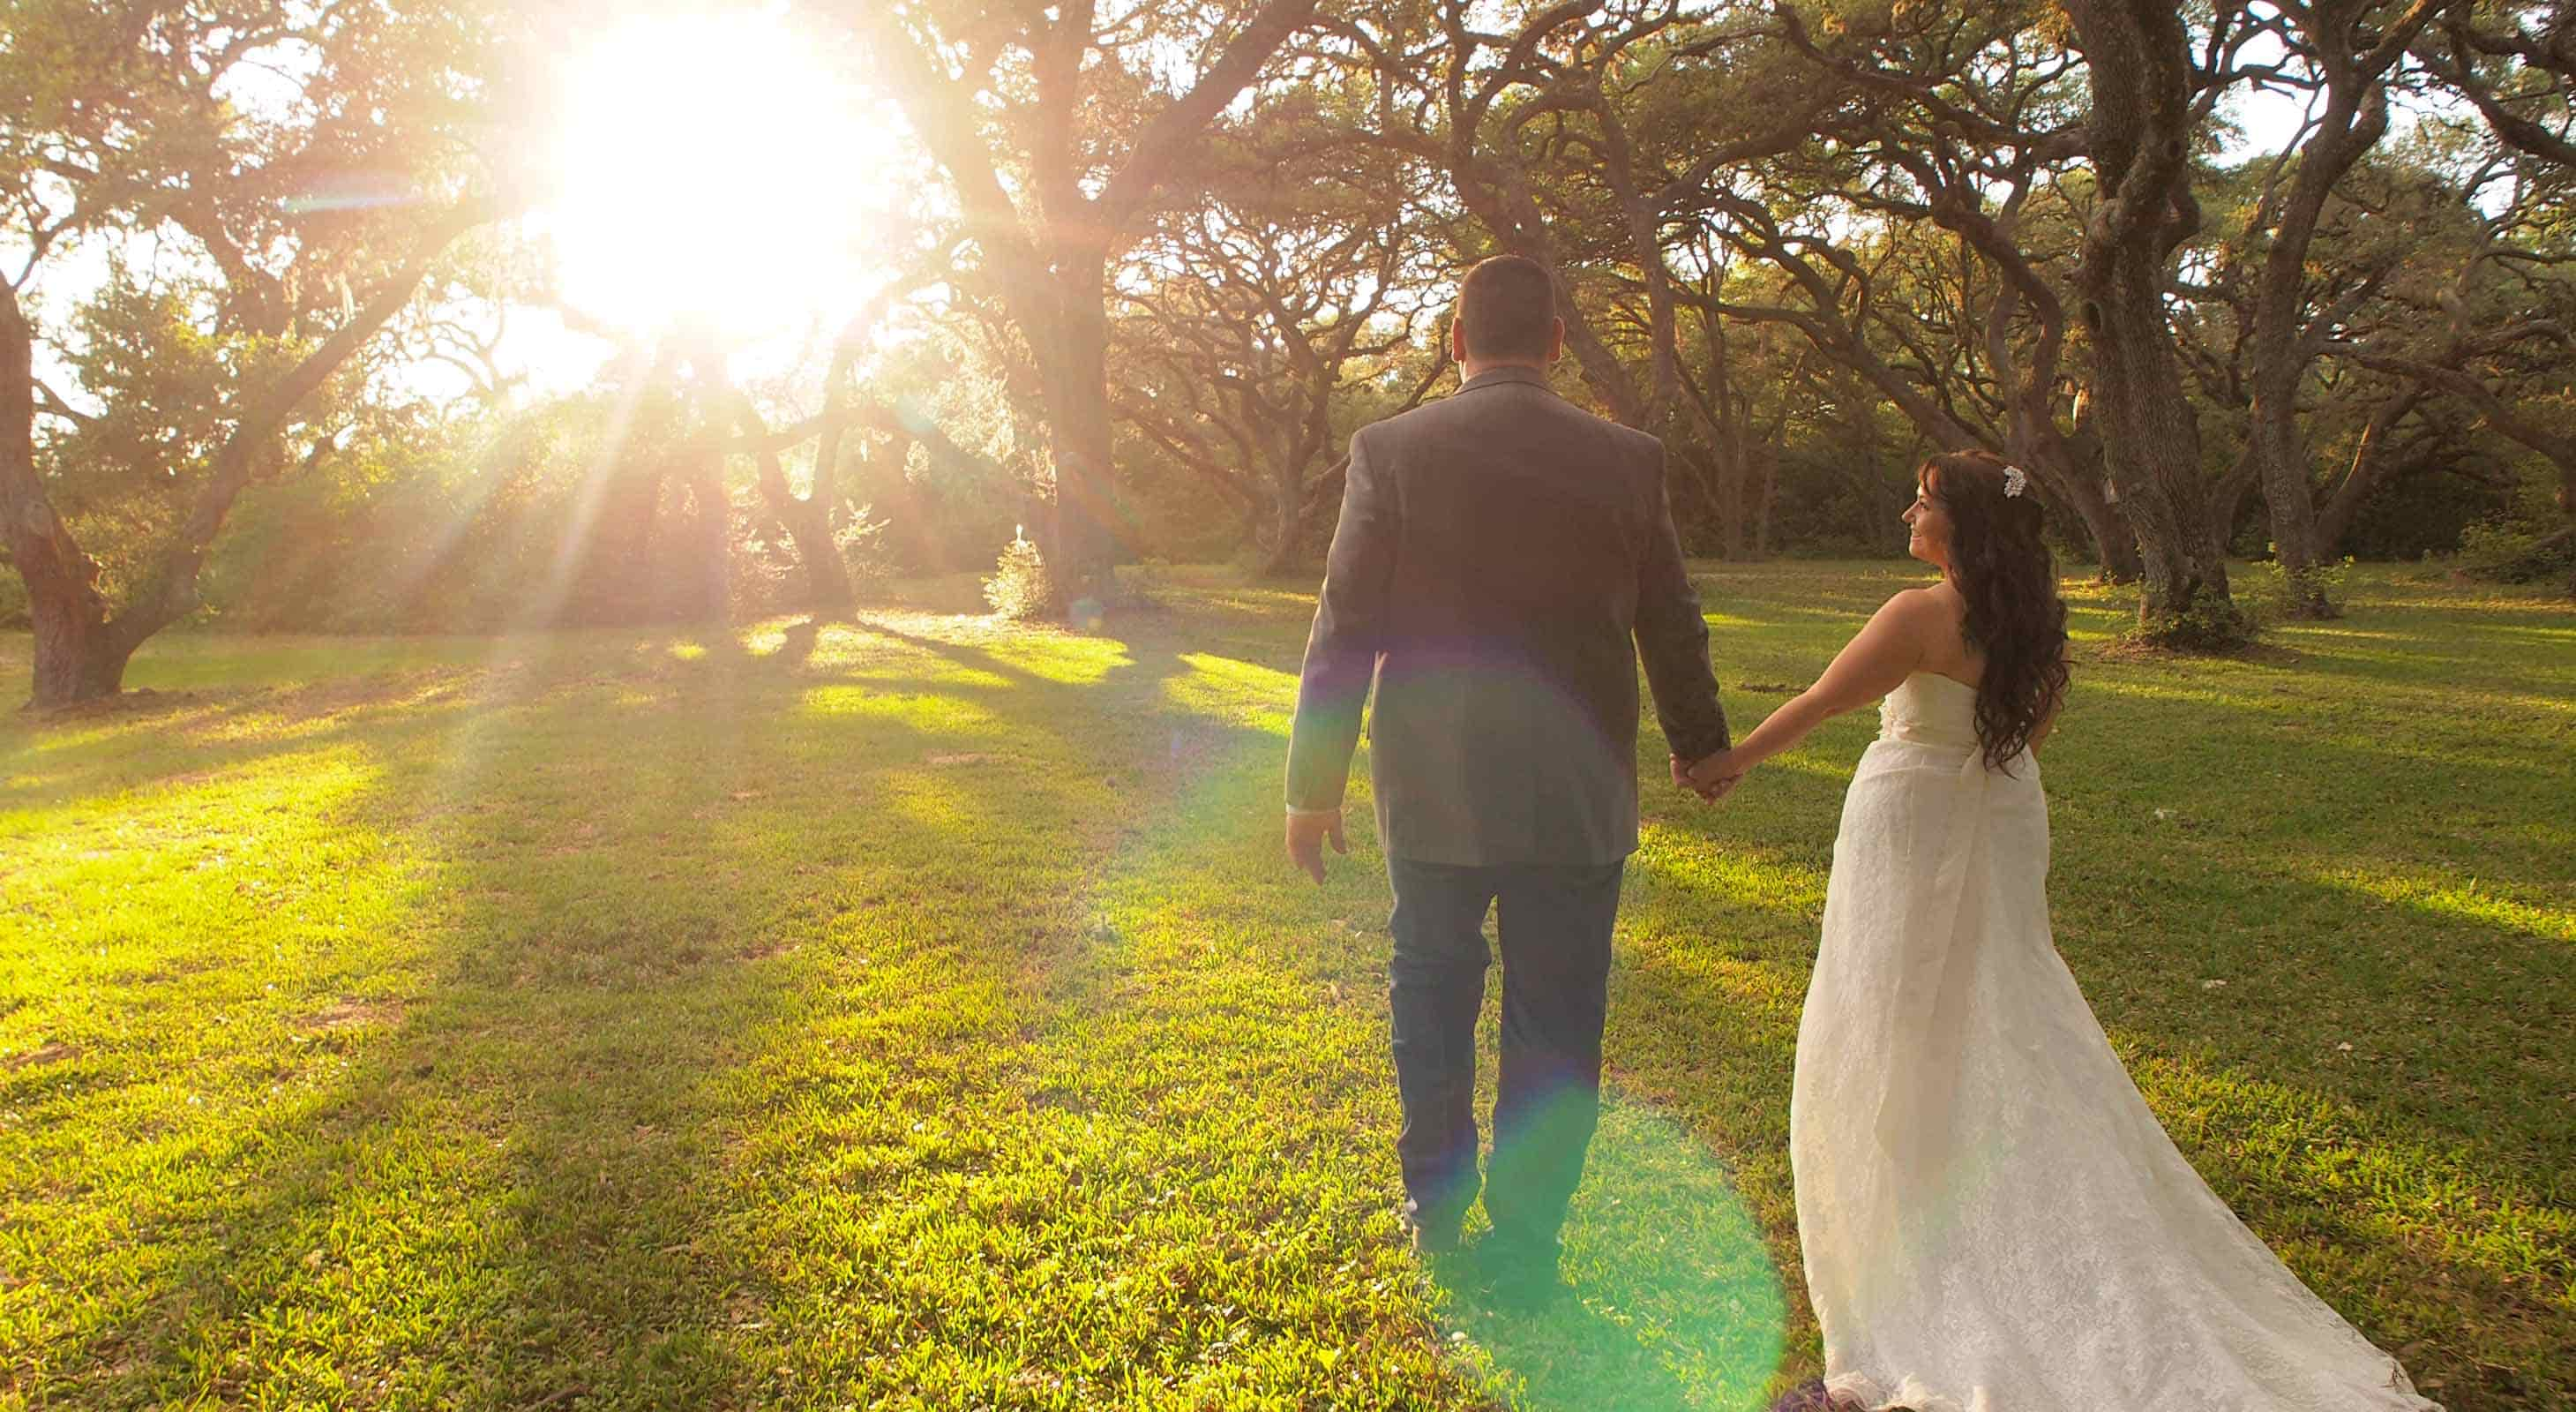 A couple walking hand in hand towards a grove of sunlit oaks